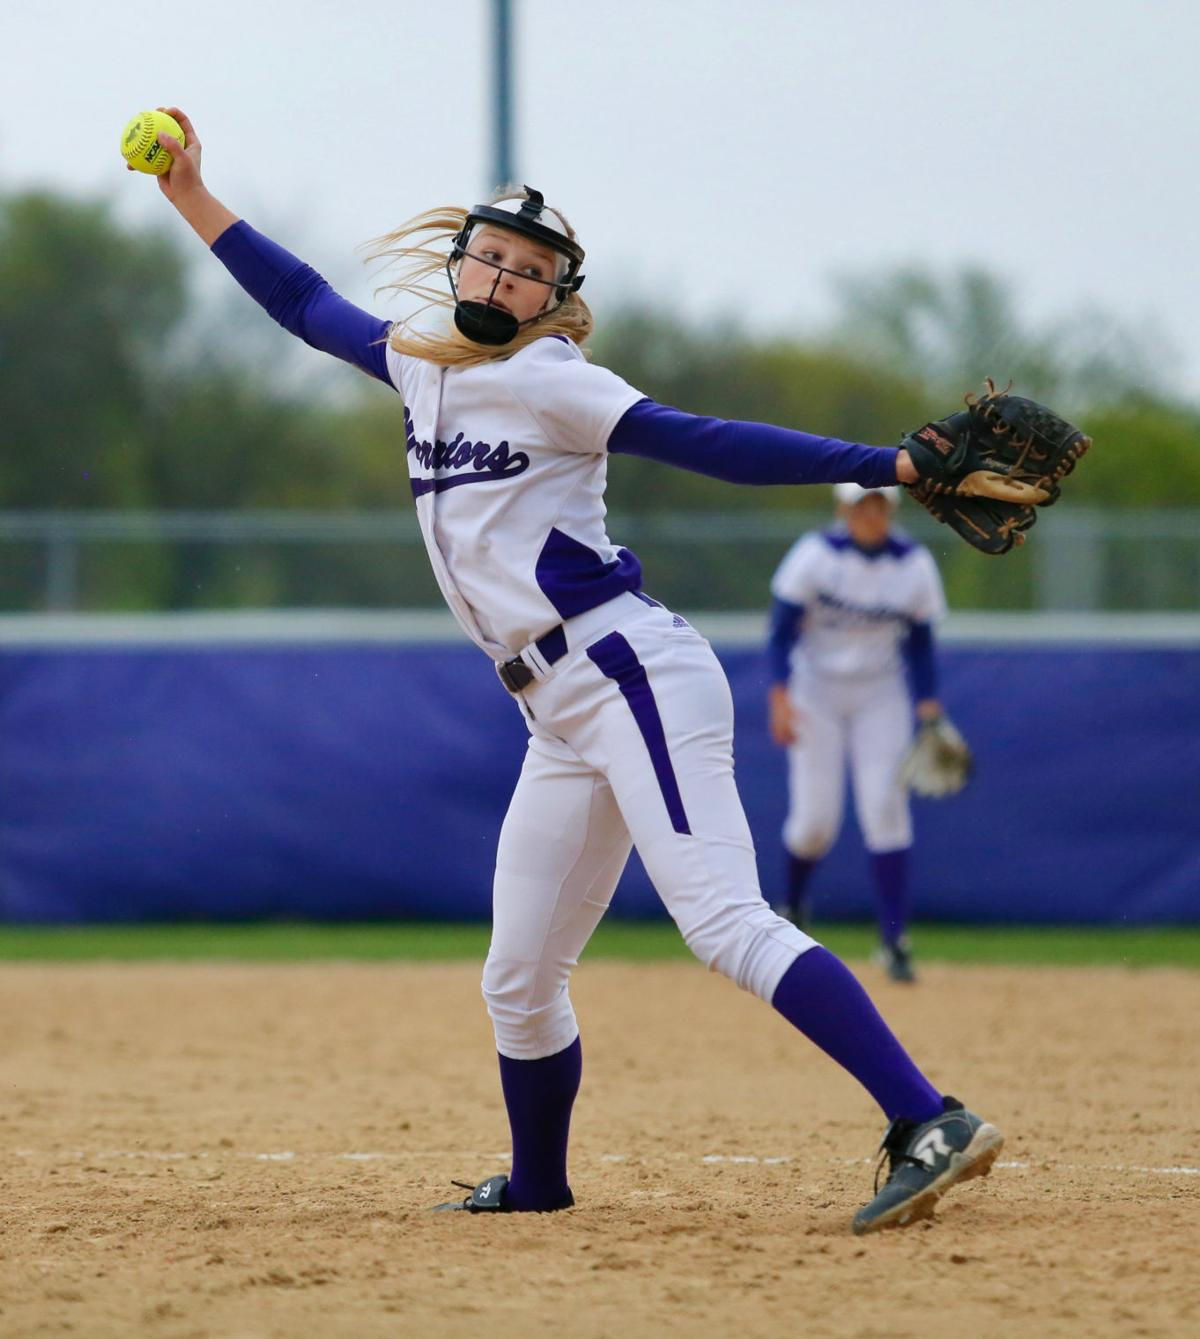 WSU Softball vs Augustana 2